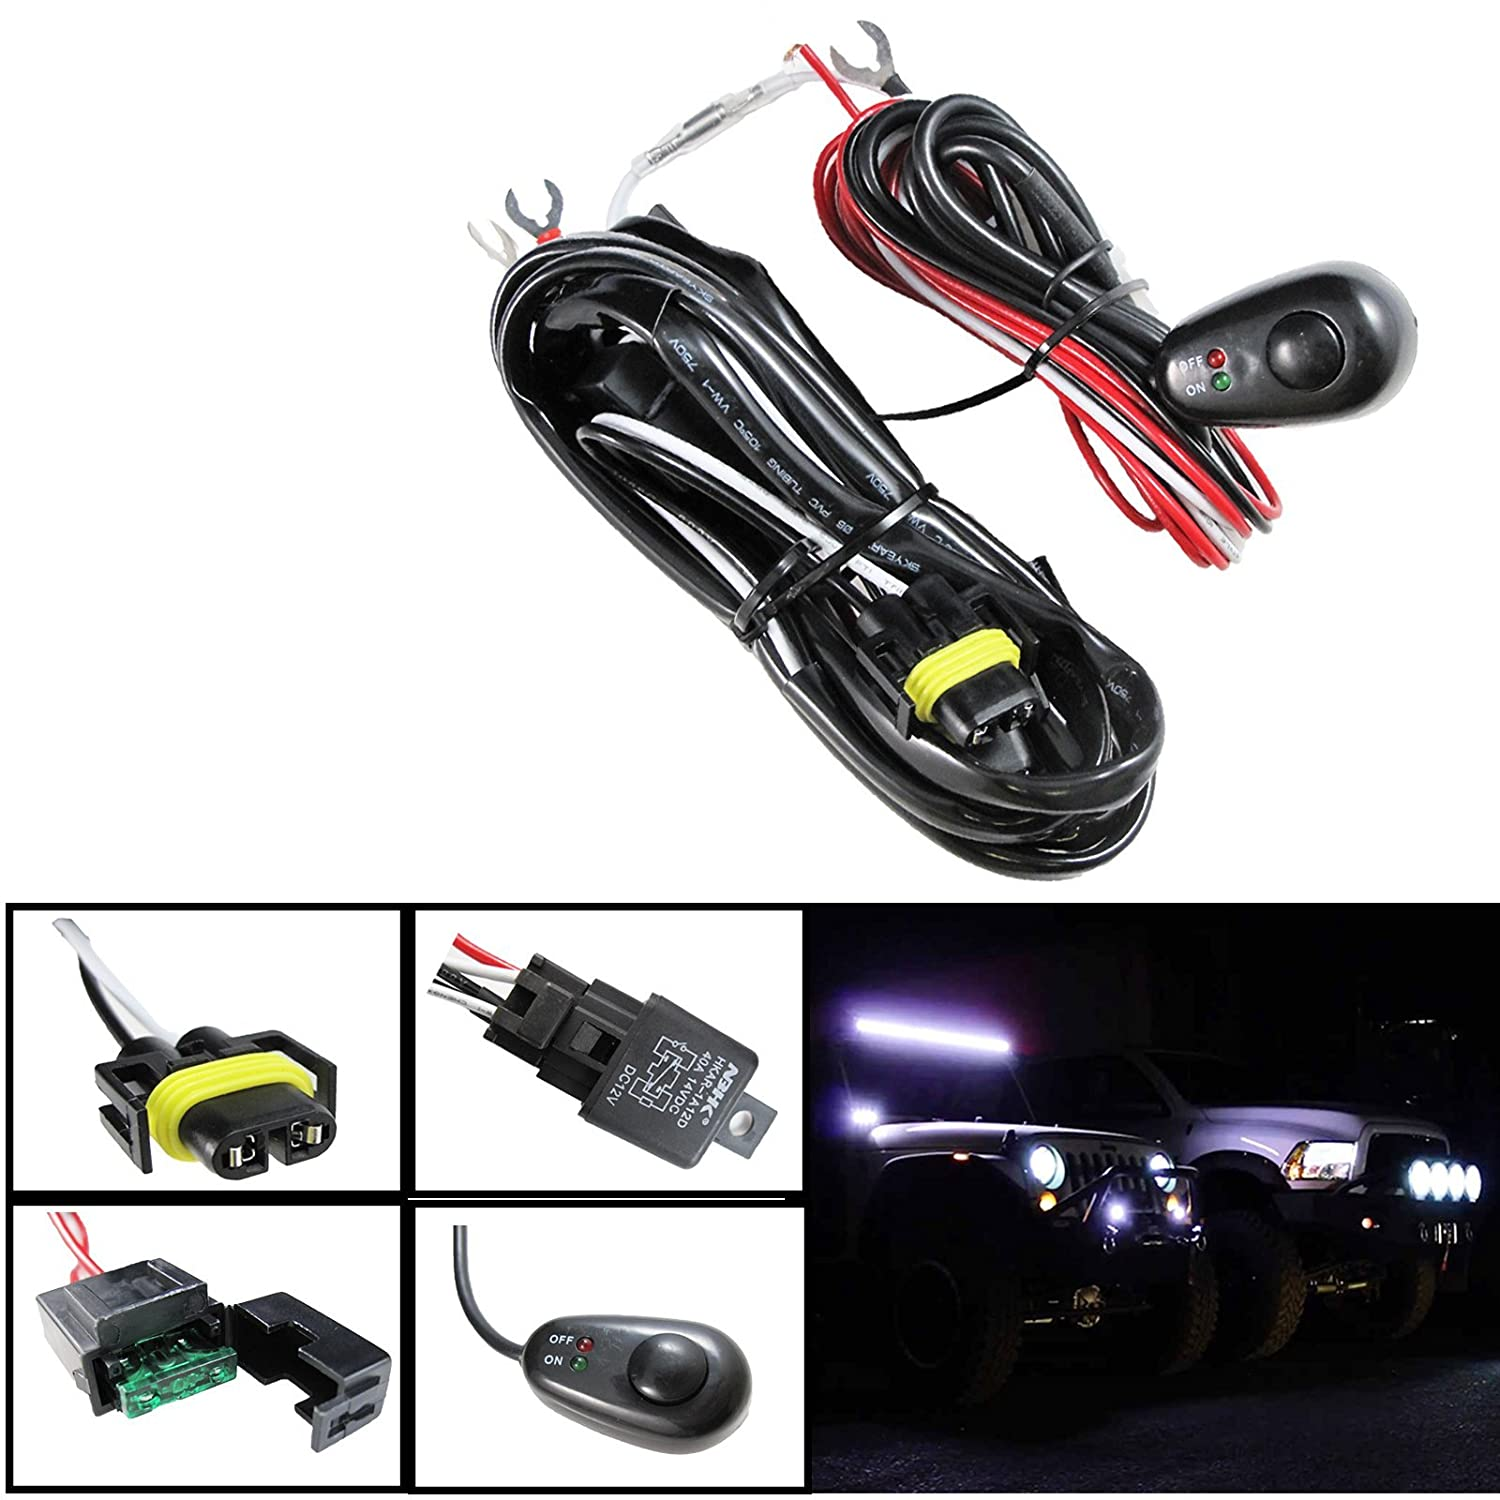 H11 H8 Relay Harness Wire Kit Led On Off Switch For 2007 Wrx Fog Light Wiring Aftermarket Lights Driving Hid Conversion Work Lamp